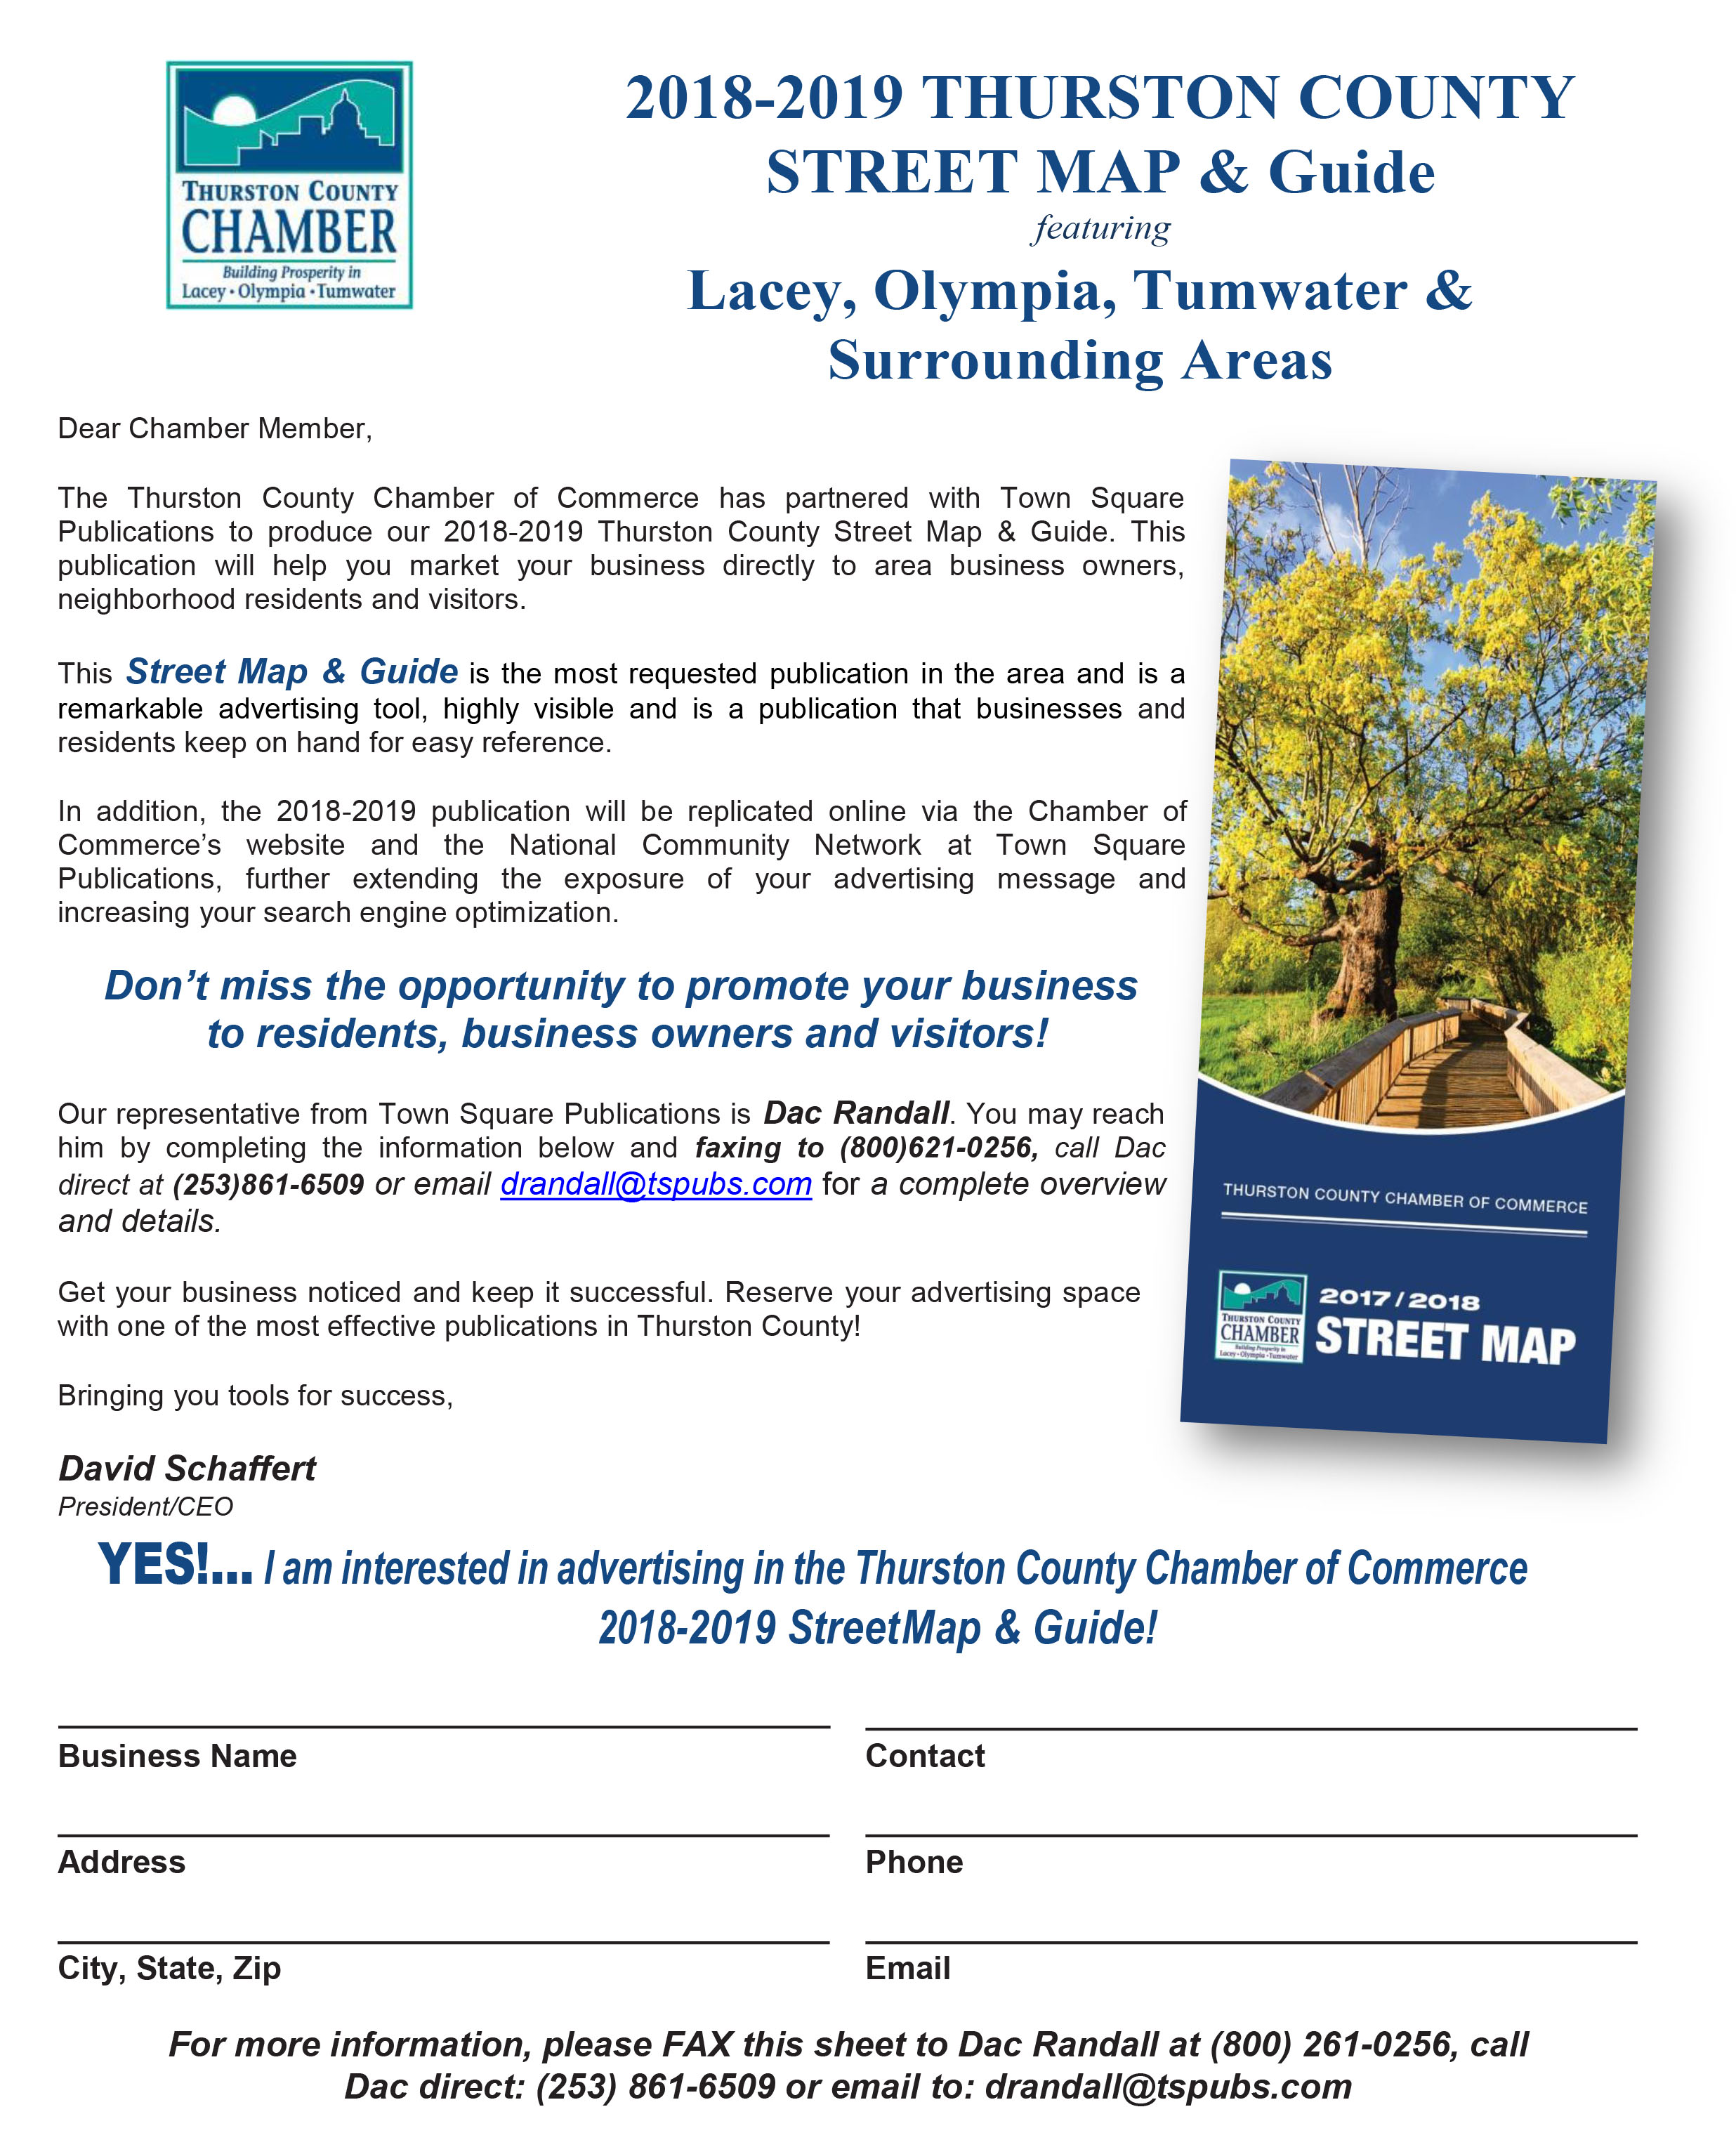 2018-2019 THURSTON COUNTY STREET MAP & Guide featuring Lacey ... on map of pickerington, map of steuben county, map of campbell, map of south eugene, map of burns park, map of stevens, map of urbana, map of canal winchester, map of deschutes, map of elmira area, map of yakima, map of pierce, map of ferry, map of thornville, map of seaholm, map of chelan, map of fairfield county, map of corning, map of mason, map of snohomish,